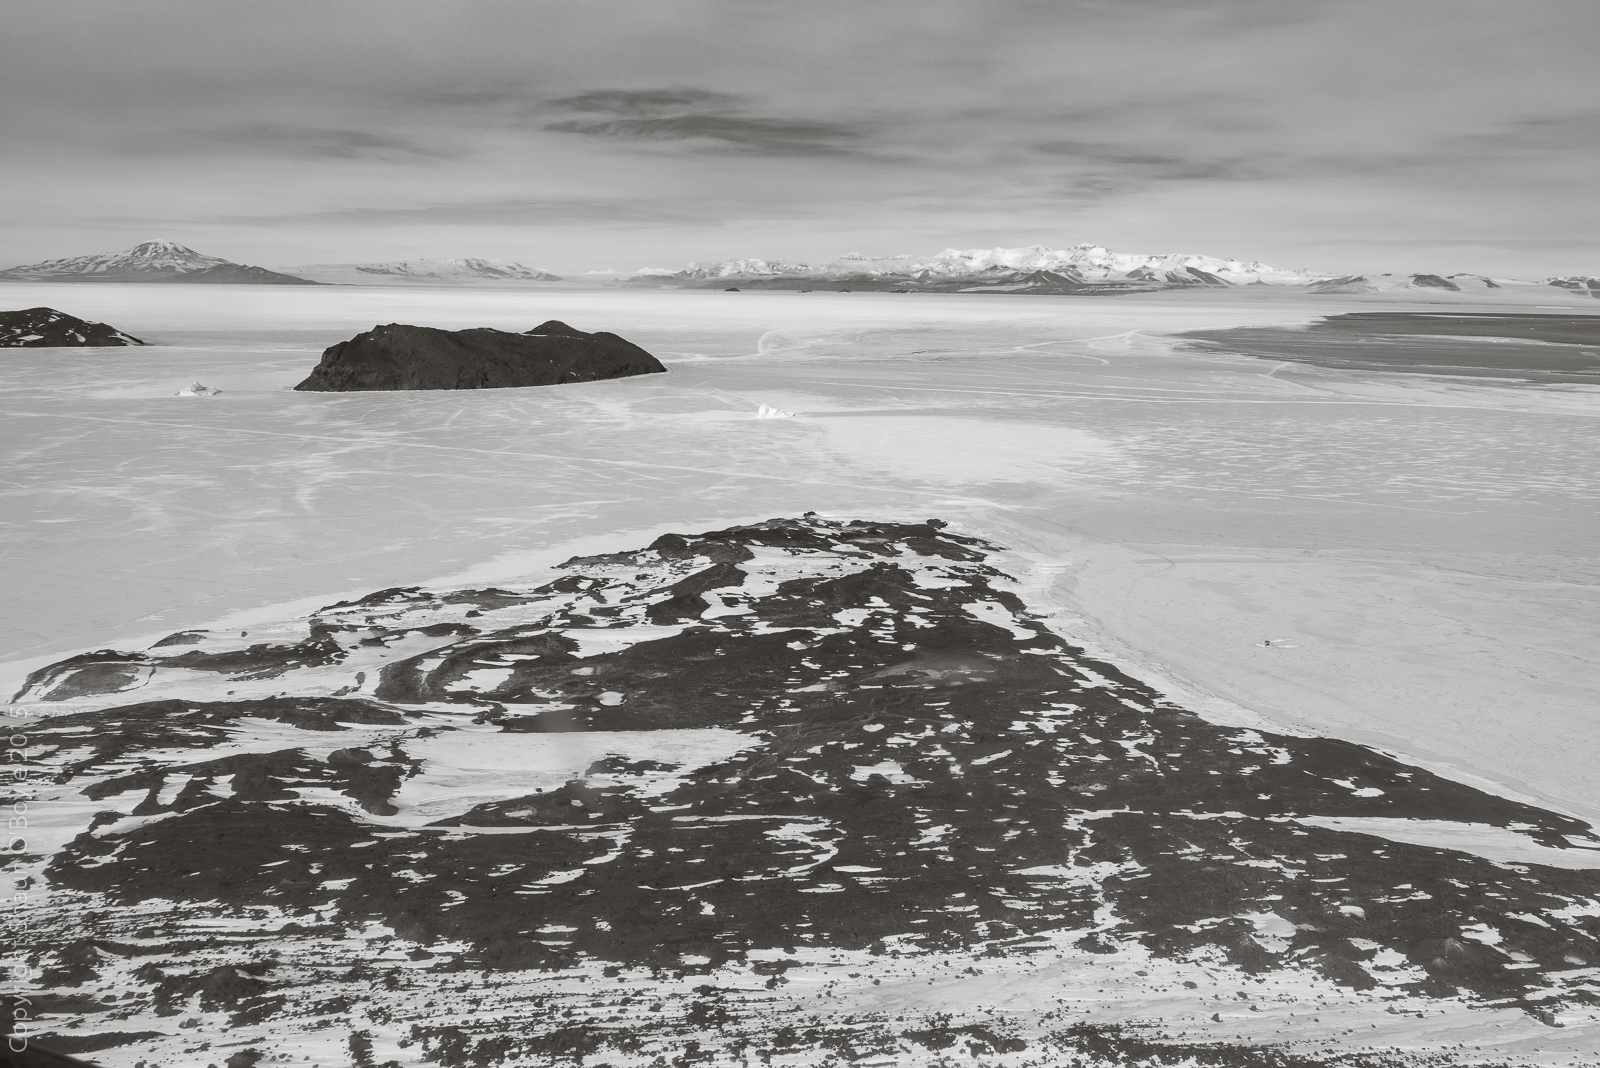 Cape Evans, where Scott's Terra Nova hut is located. Inaccessible Island in the distance.